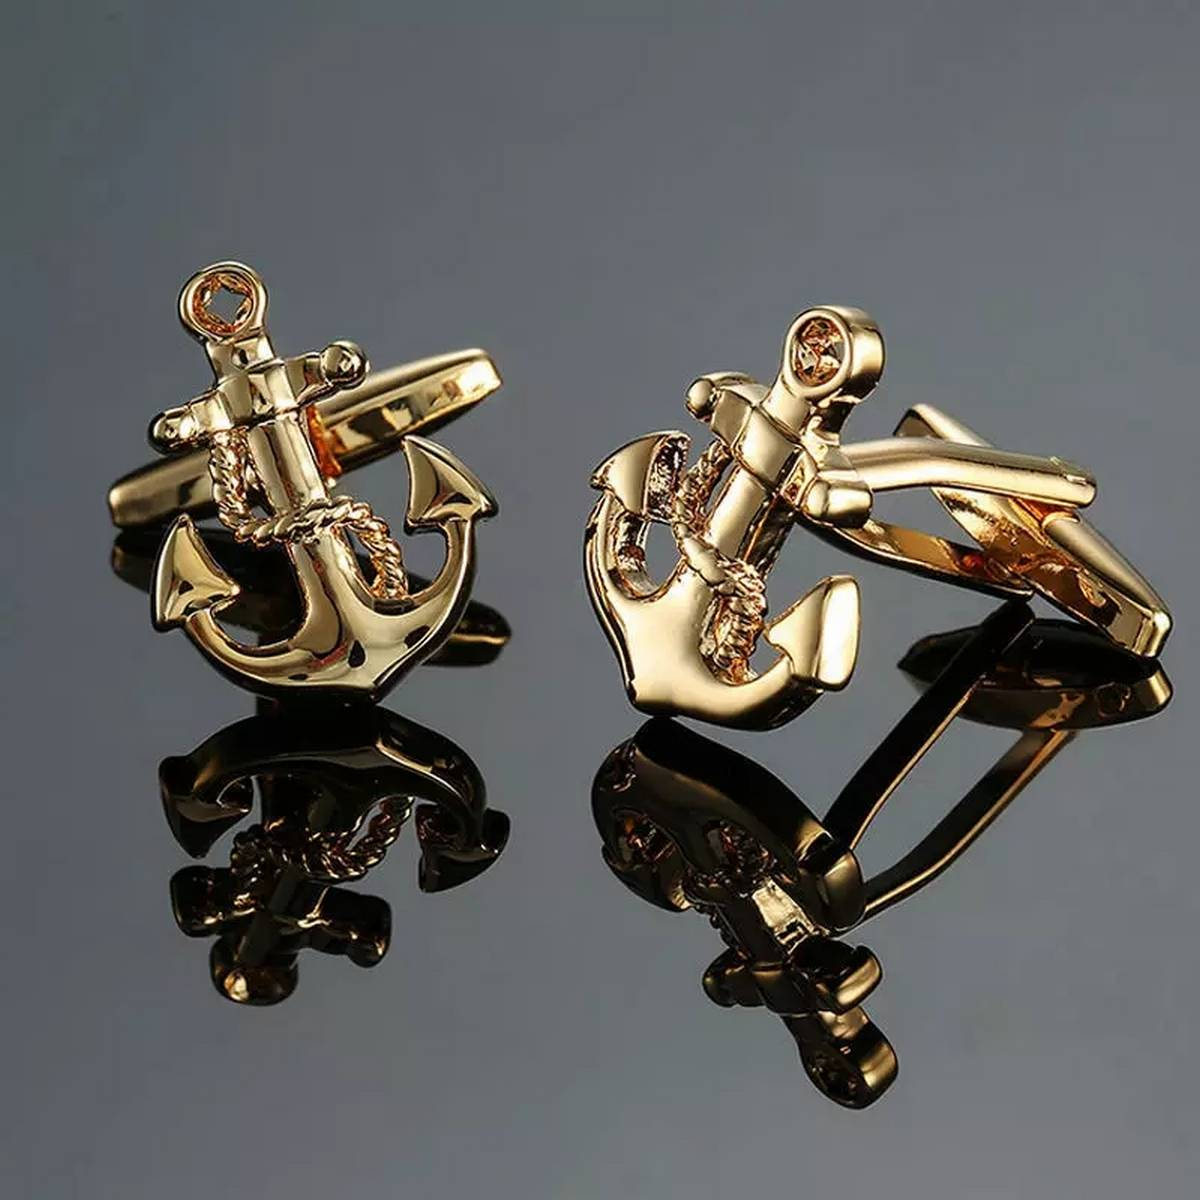 Sea Anchor Cuff Links Wedding Party Gift Cufflinks For Mens French Suit Shirt Button.